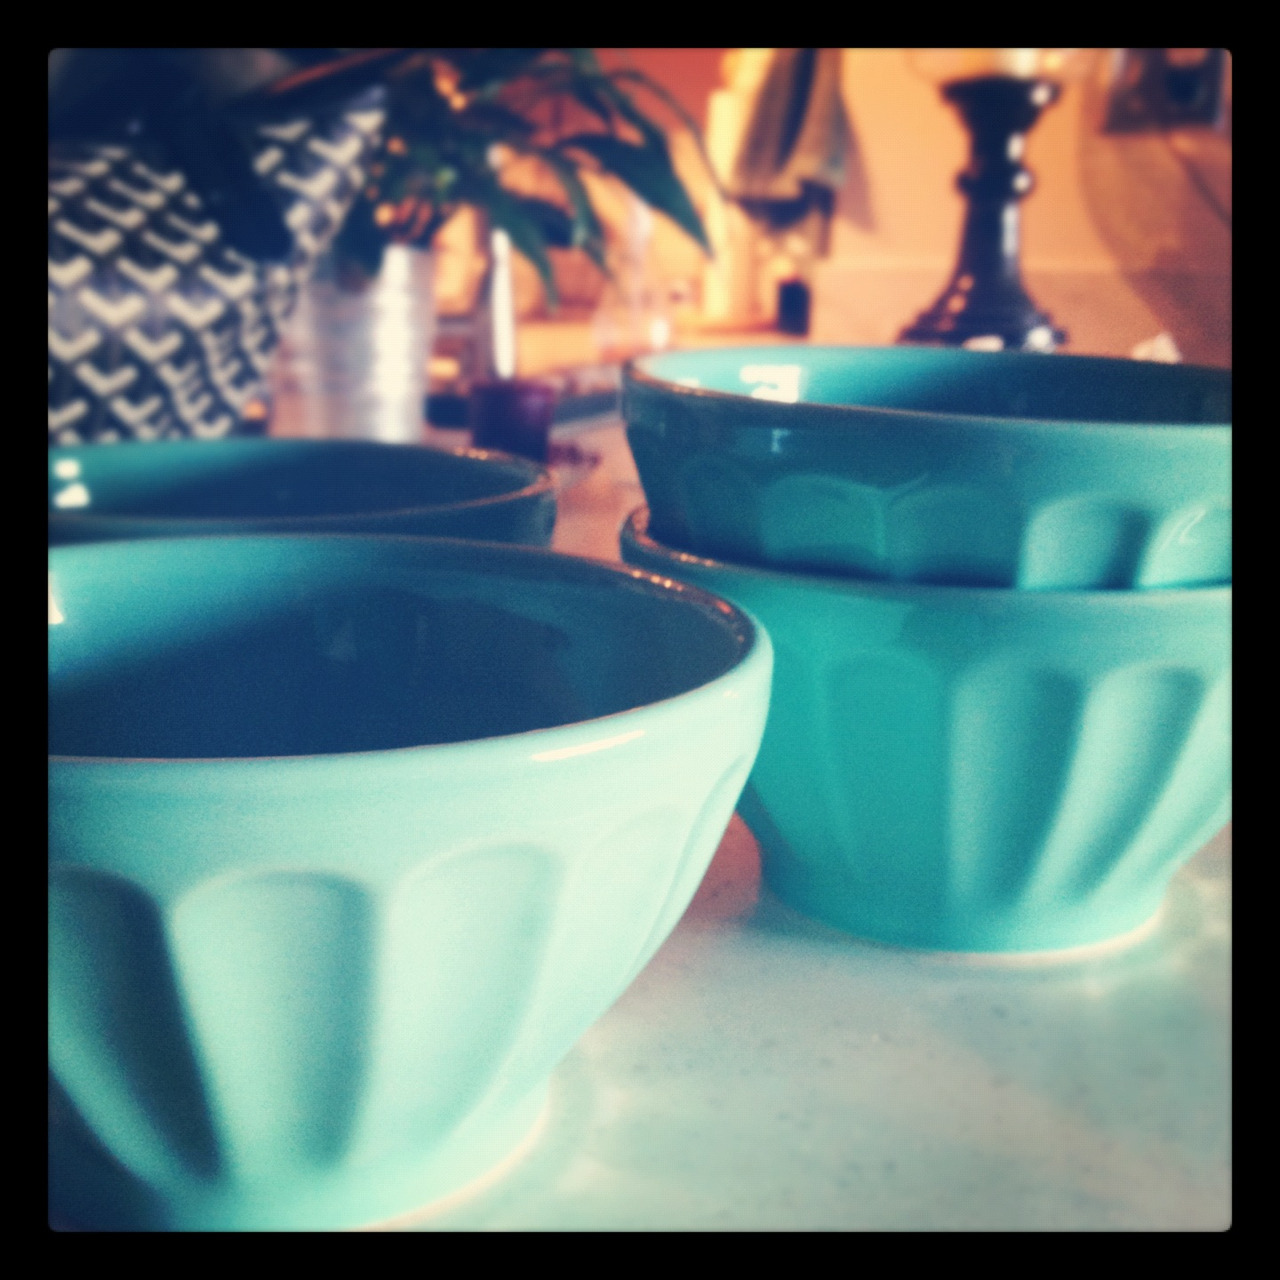 New #turquoise @anthropologiecom Biscuit bowls. #portugal #dishes #kitchen #home #anthropologie